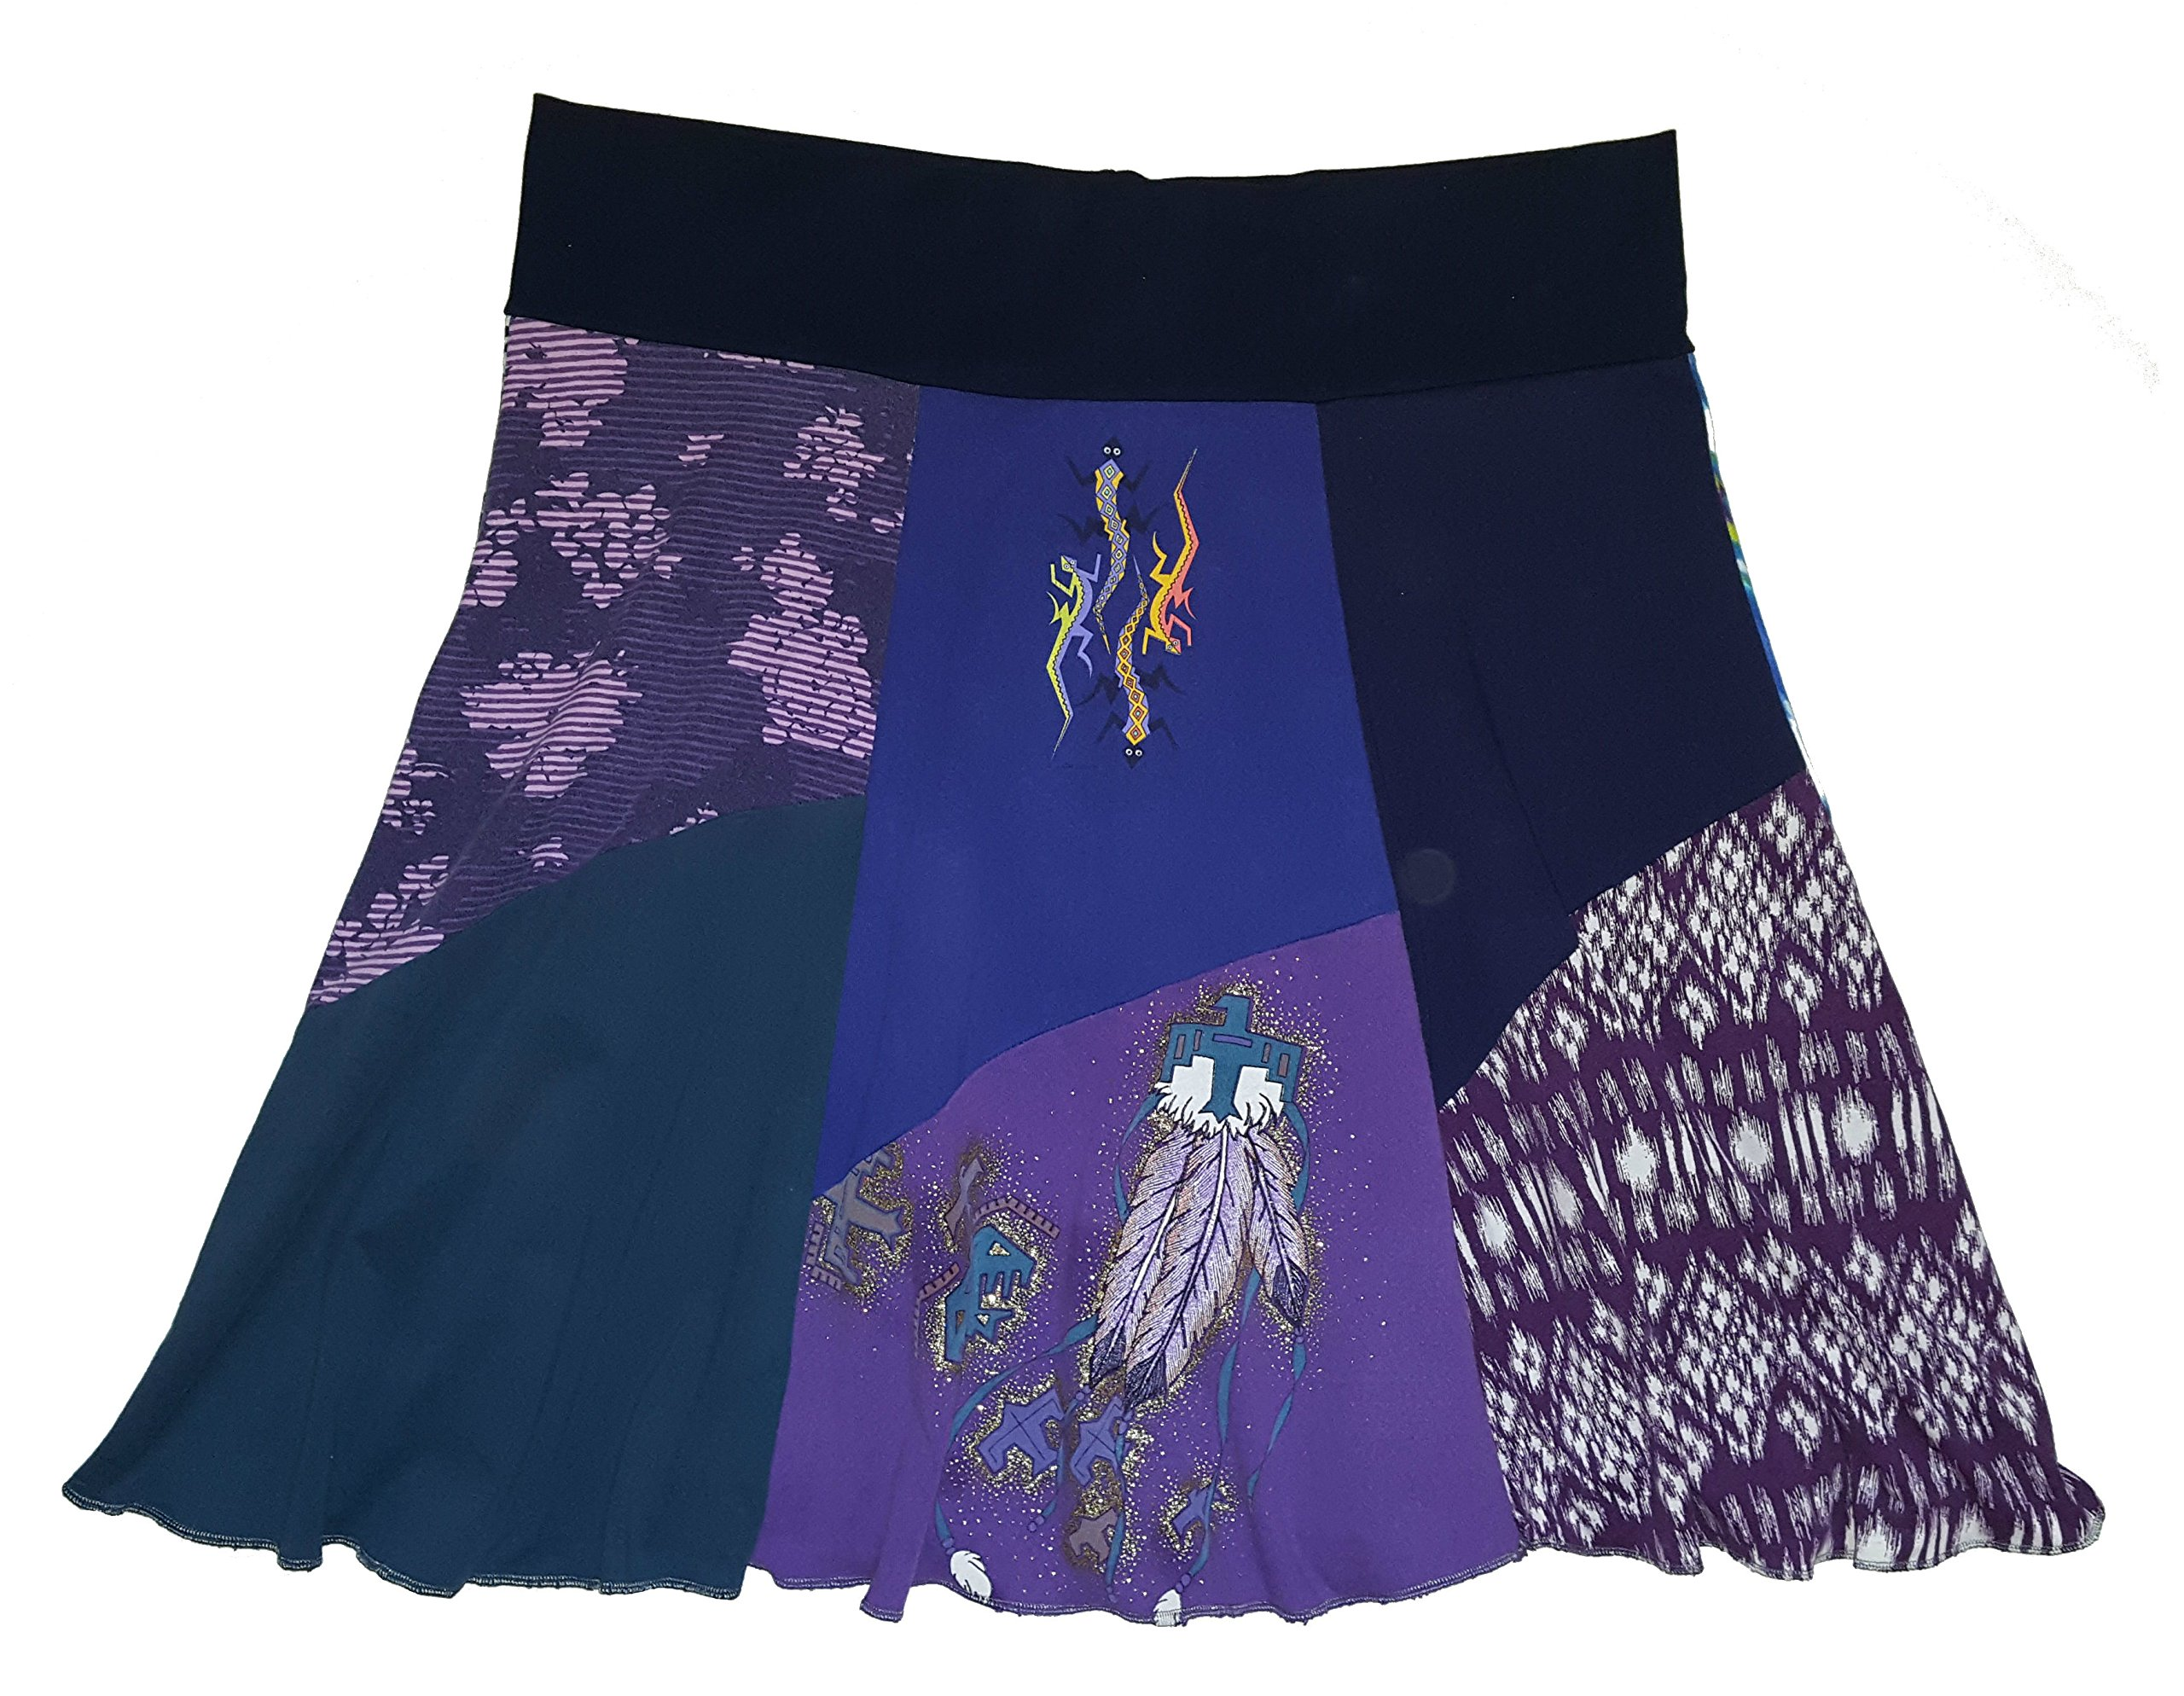 Plus Size Southwestern Skirt 2X 3X One of a Kind Upcycled Purple T-Shirt Skirt